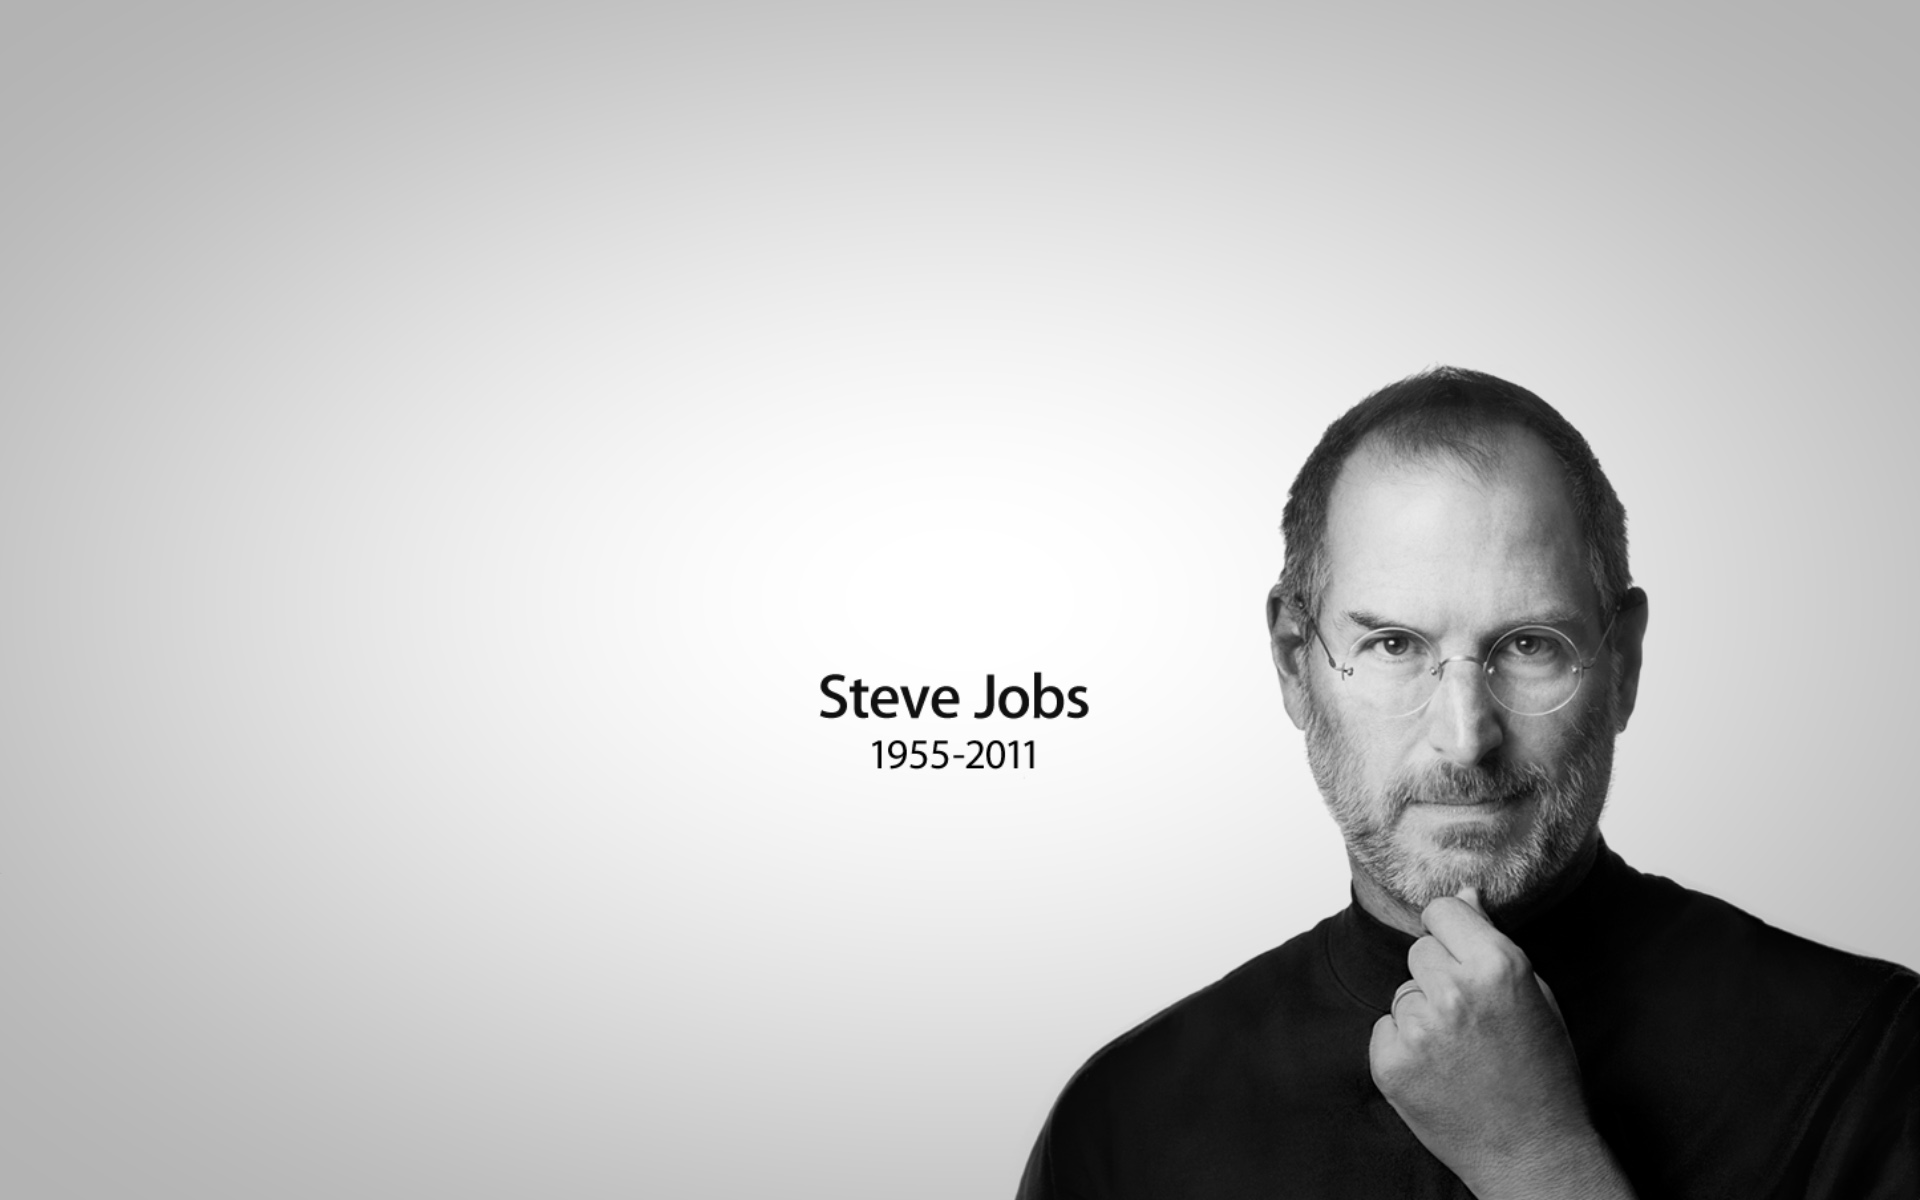 Steve Jobs Wallpaper HD